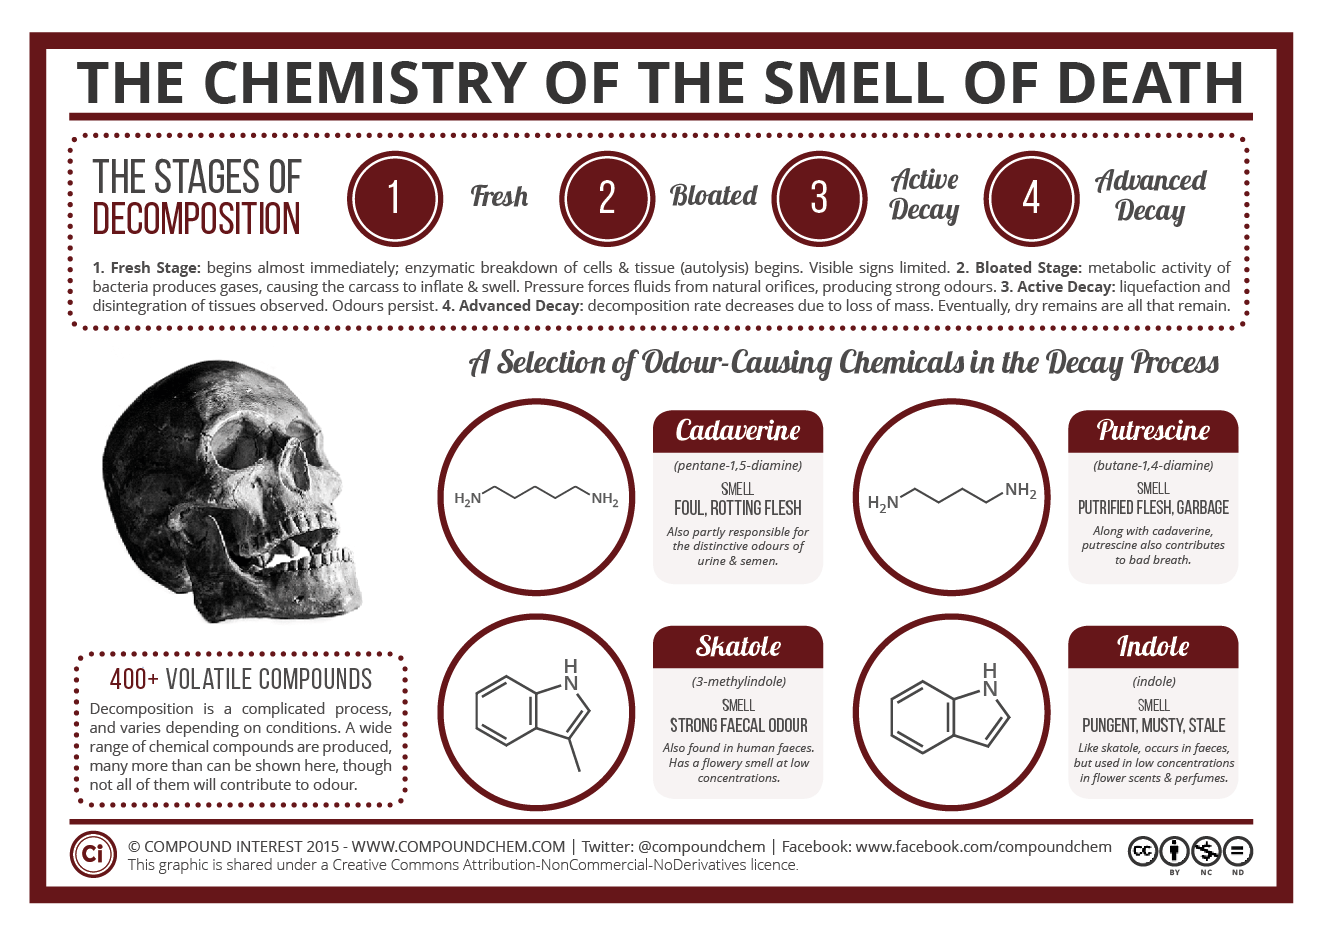 A more detailed look at the chemical compounds in decomposition, by Compound Interest